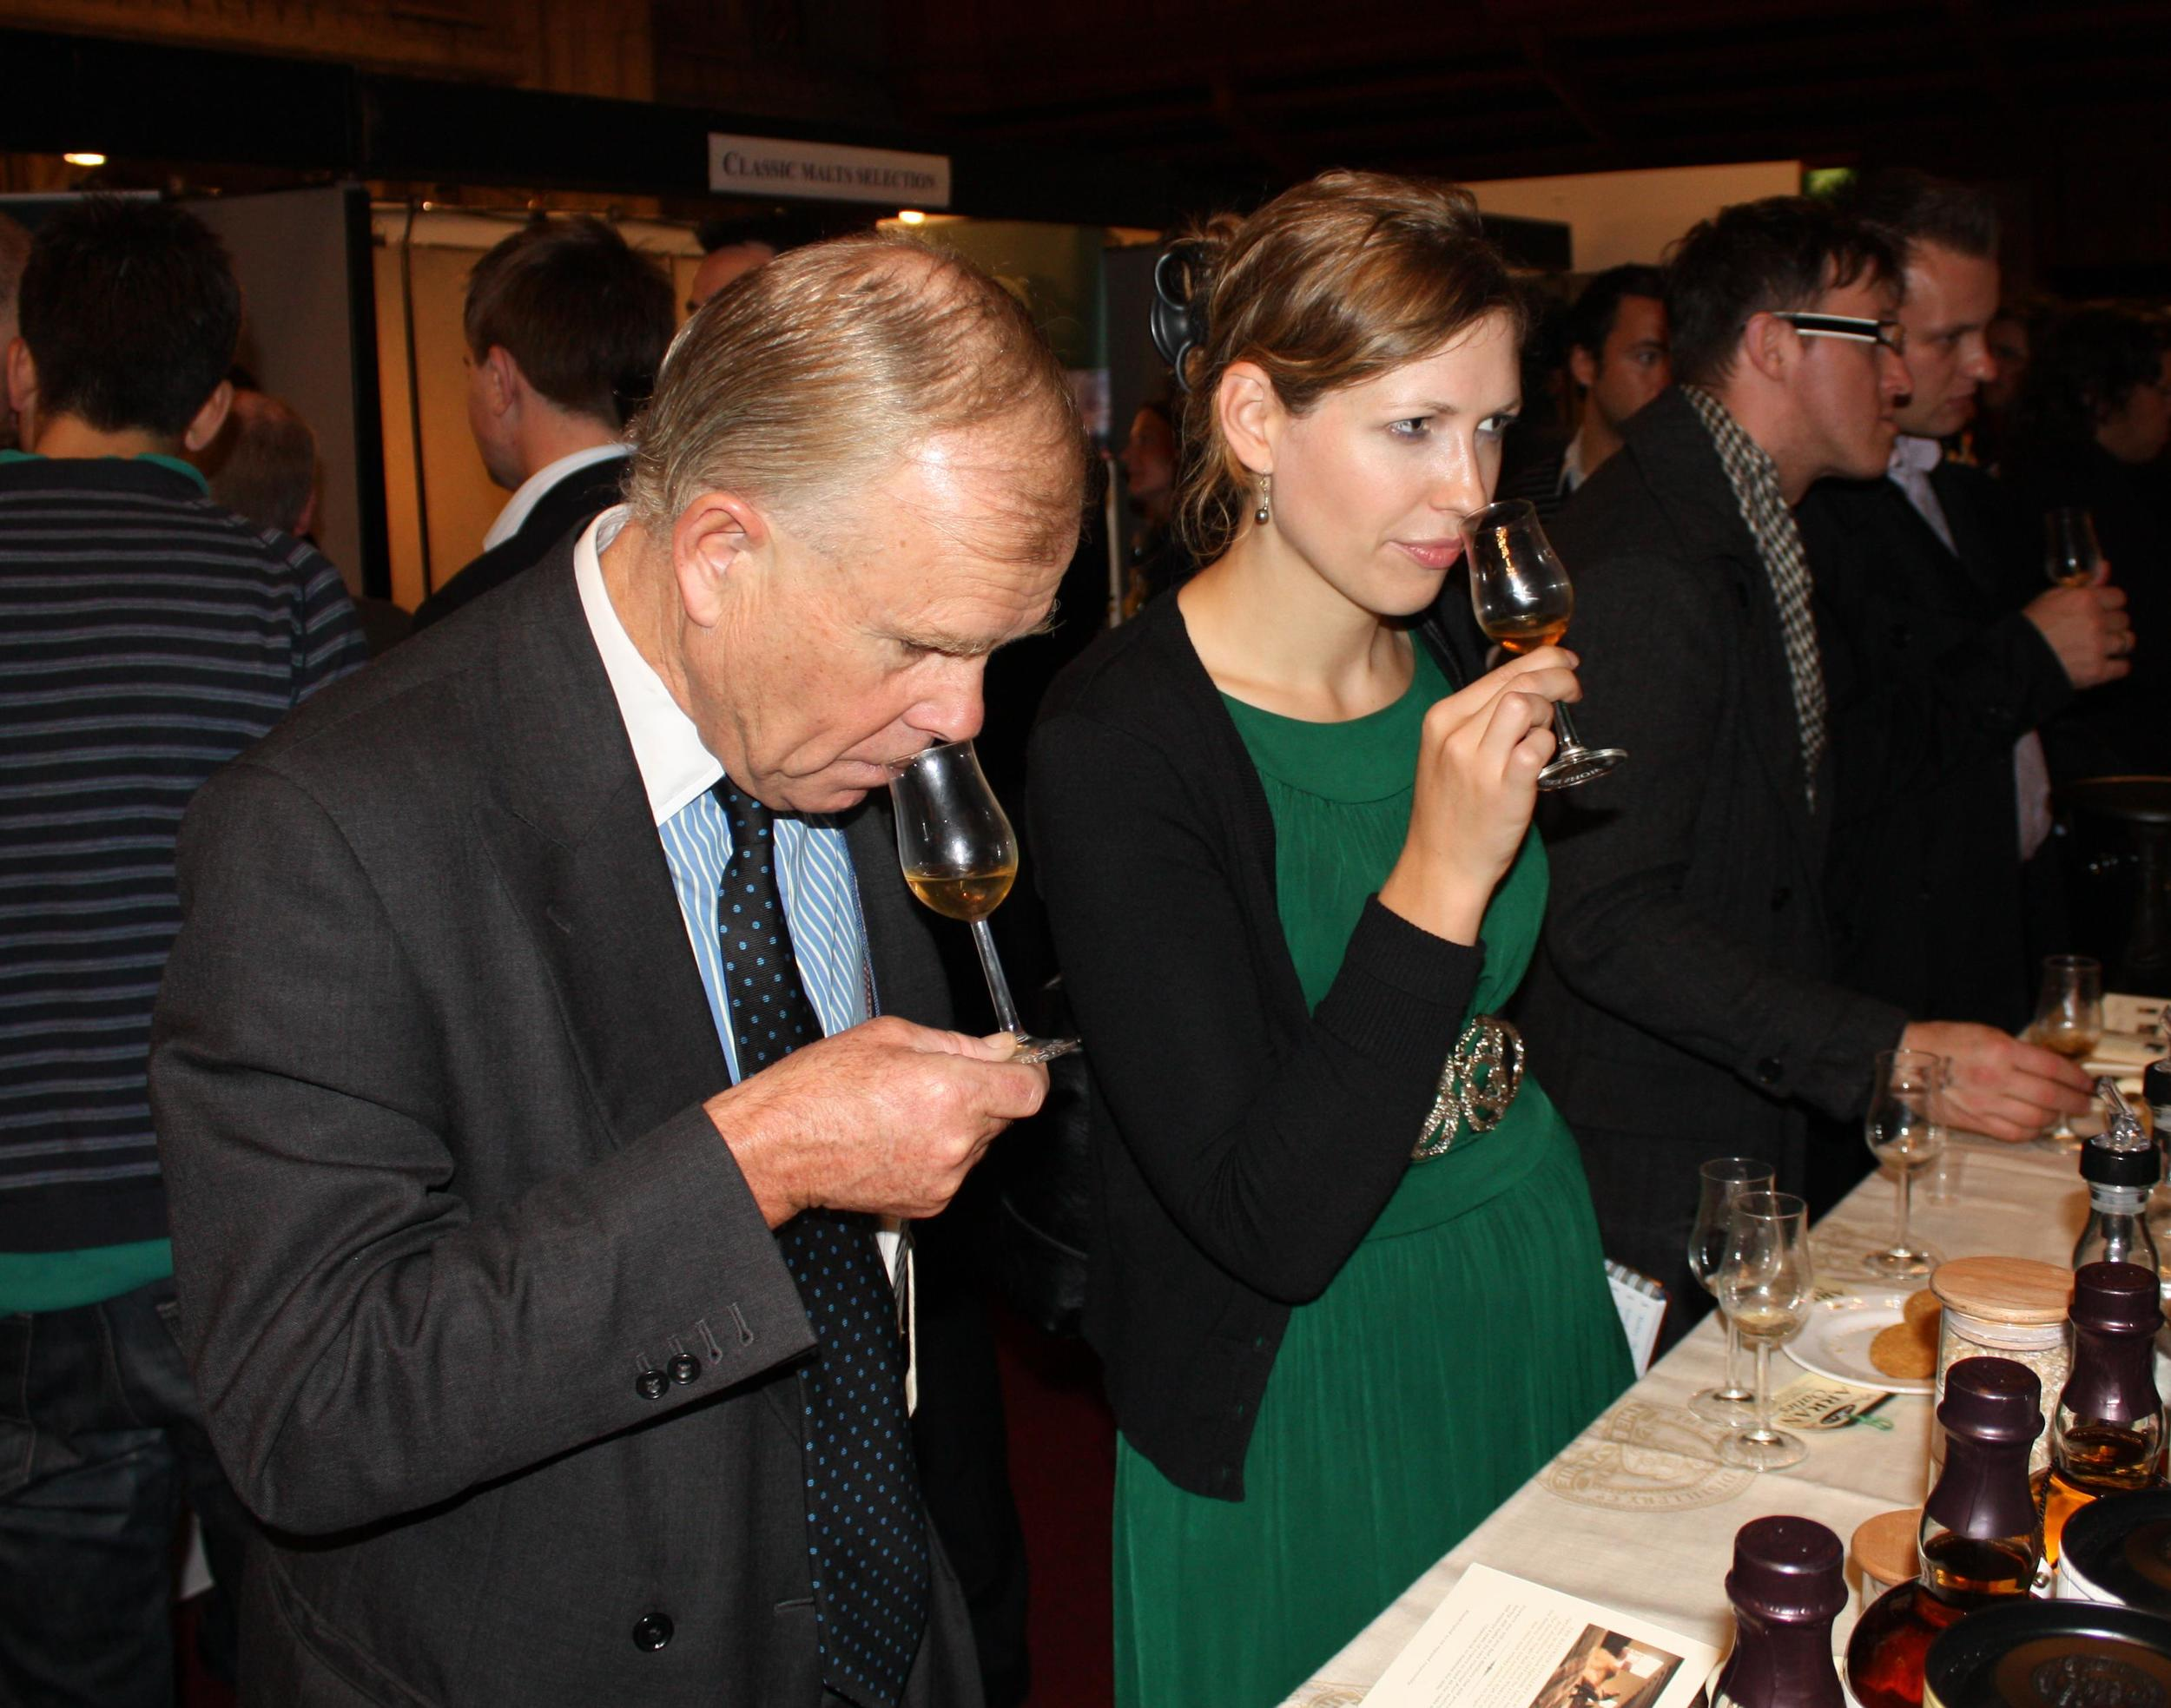 The London Whisky Show, 2009. Image by Tom Schoon.